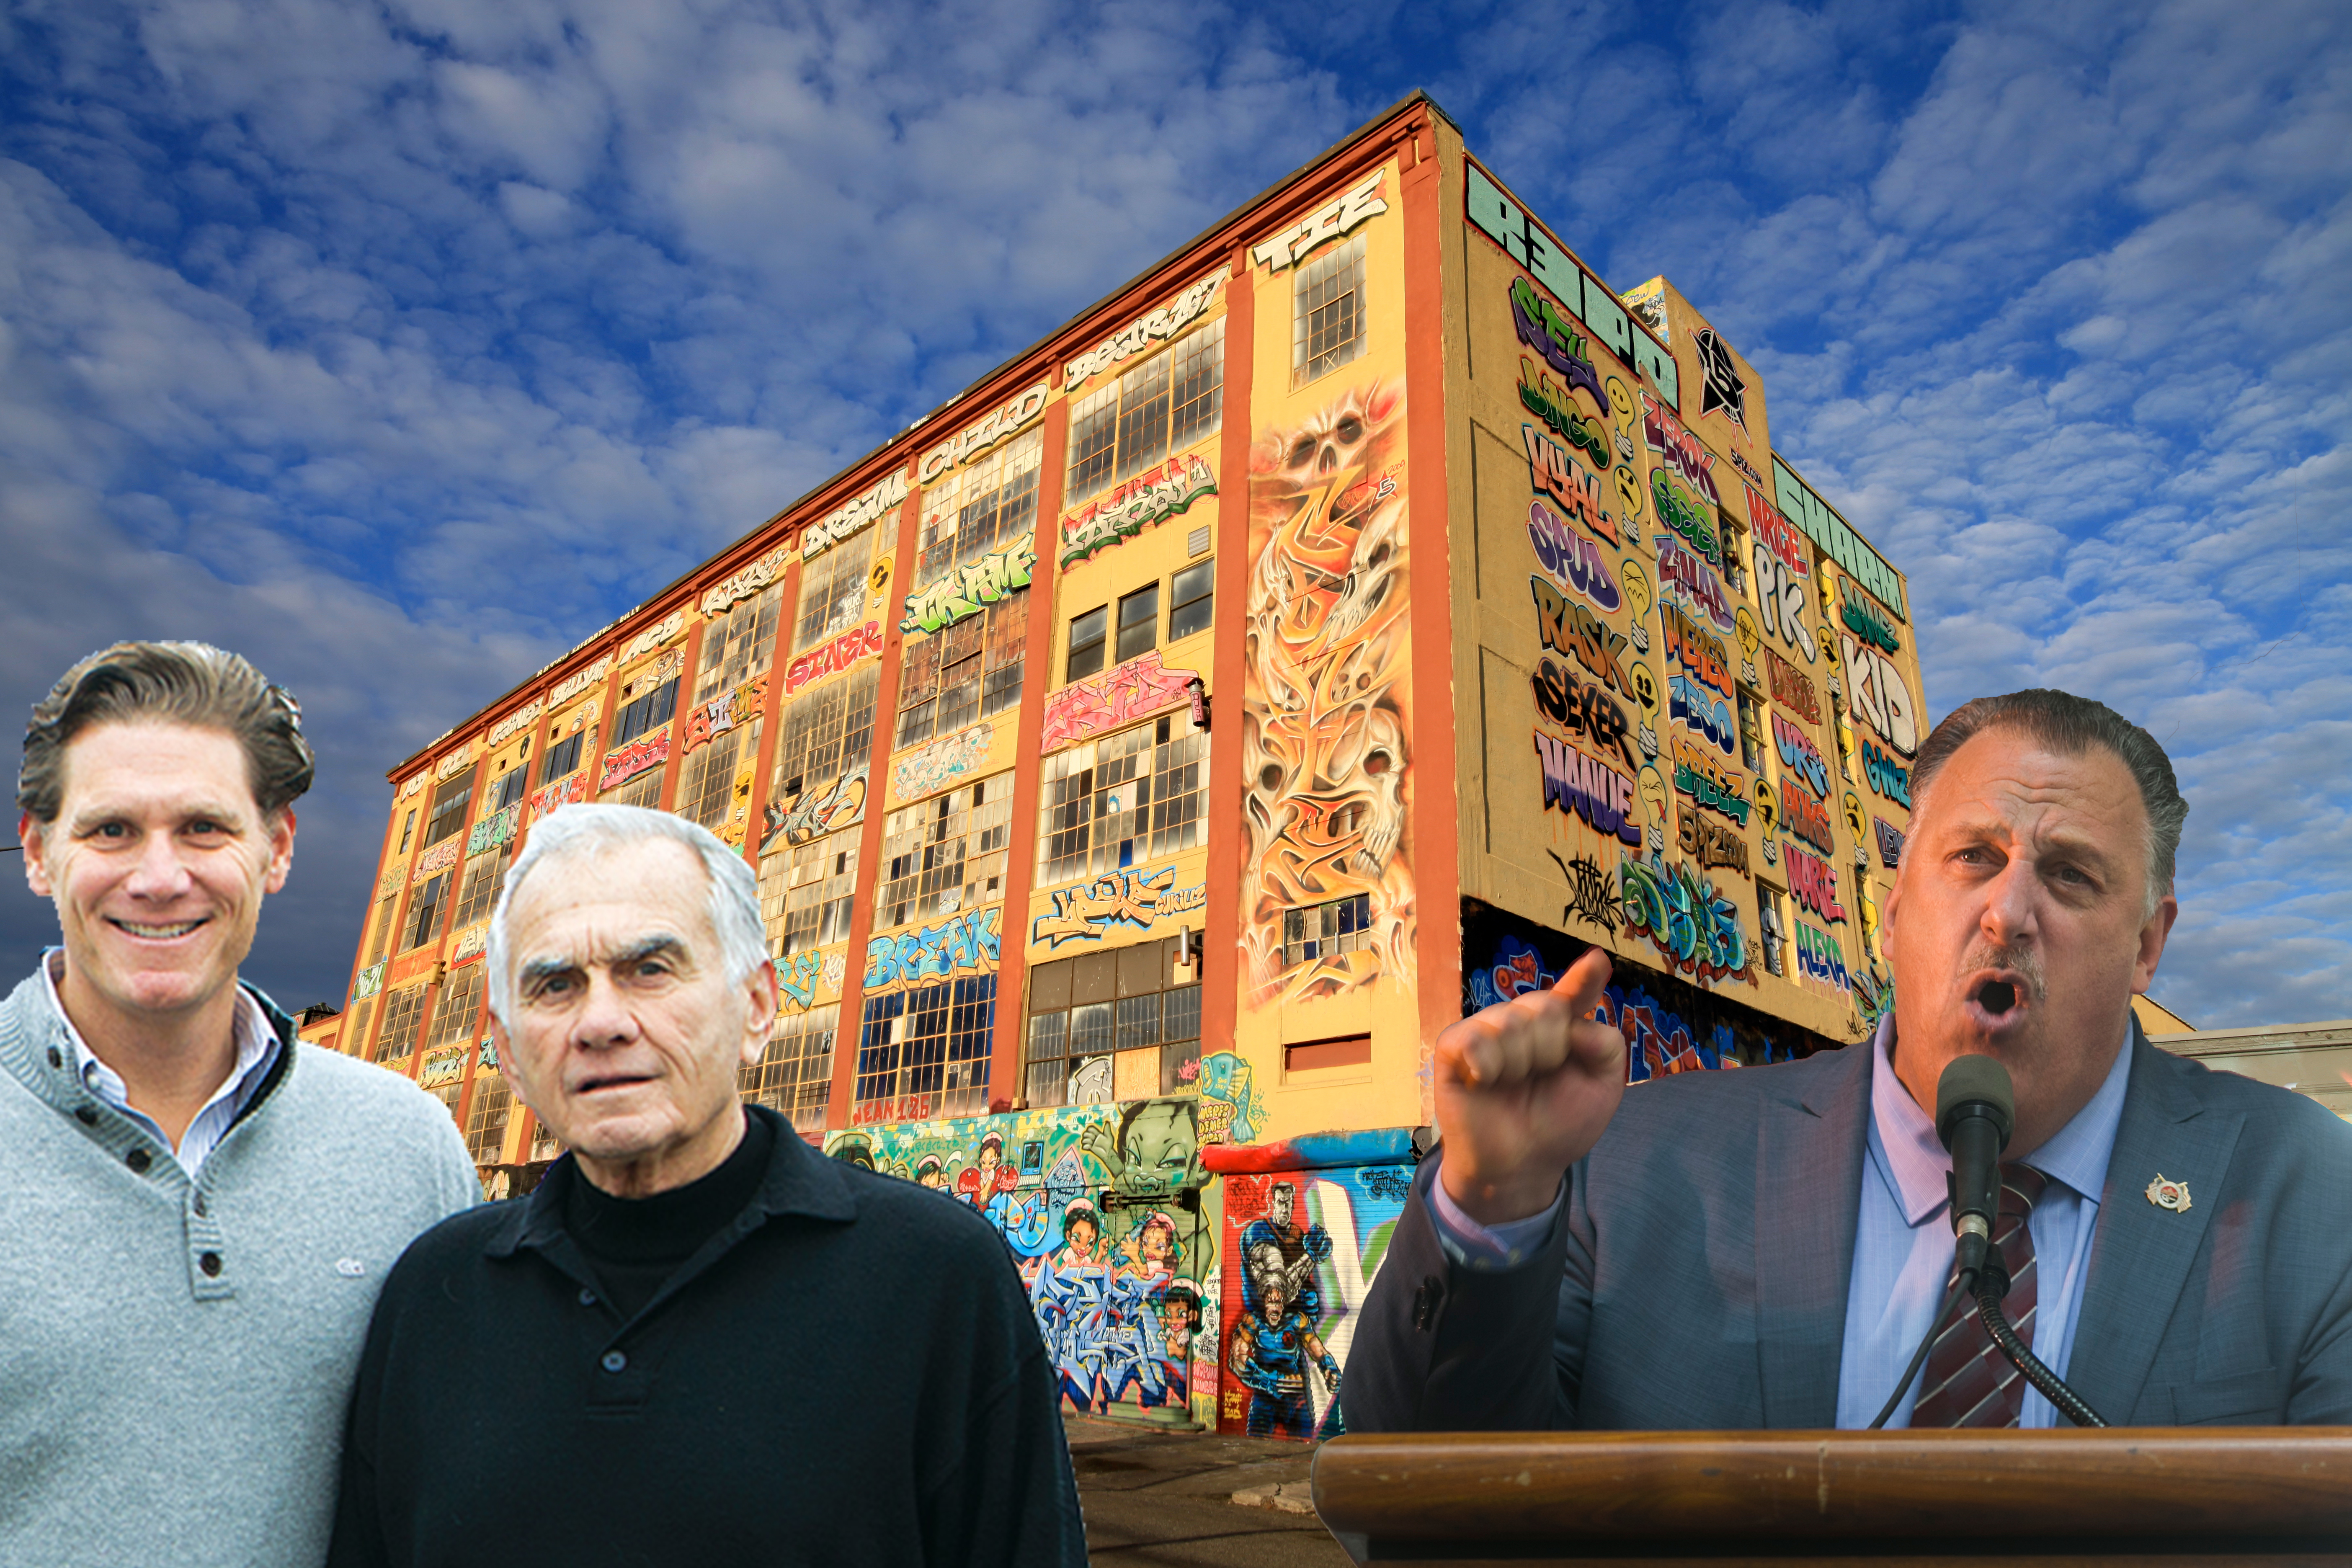 From left: David Wolkoff and his father, Jerry Wolkoff 5Pointz in Long Island City and Gary LaBarbera